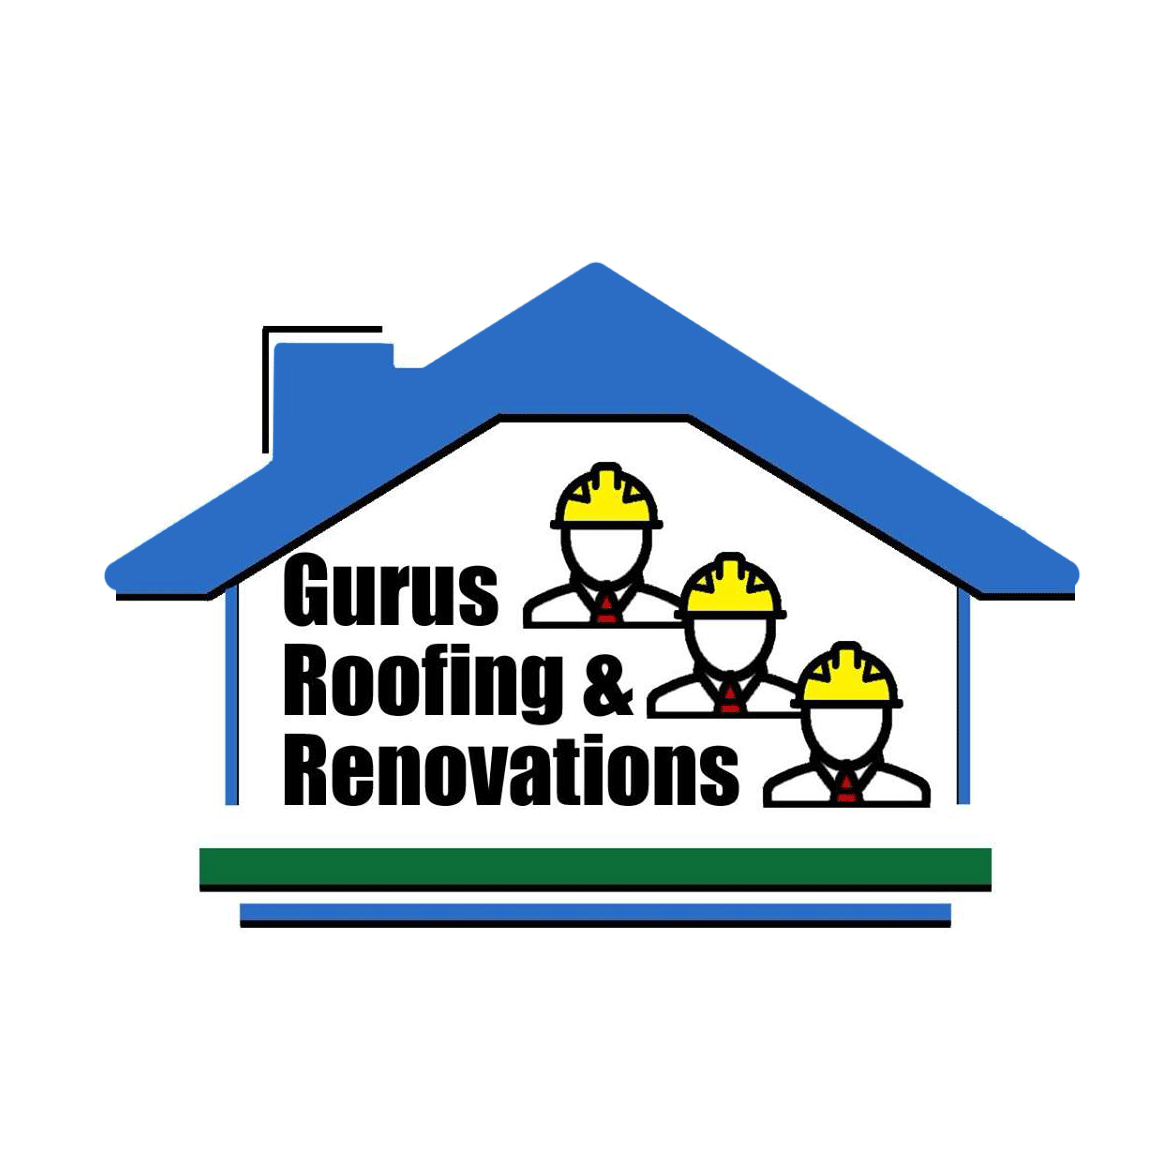 Gurus Roofing and Renovations